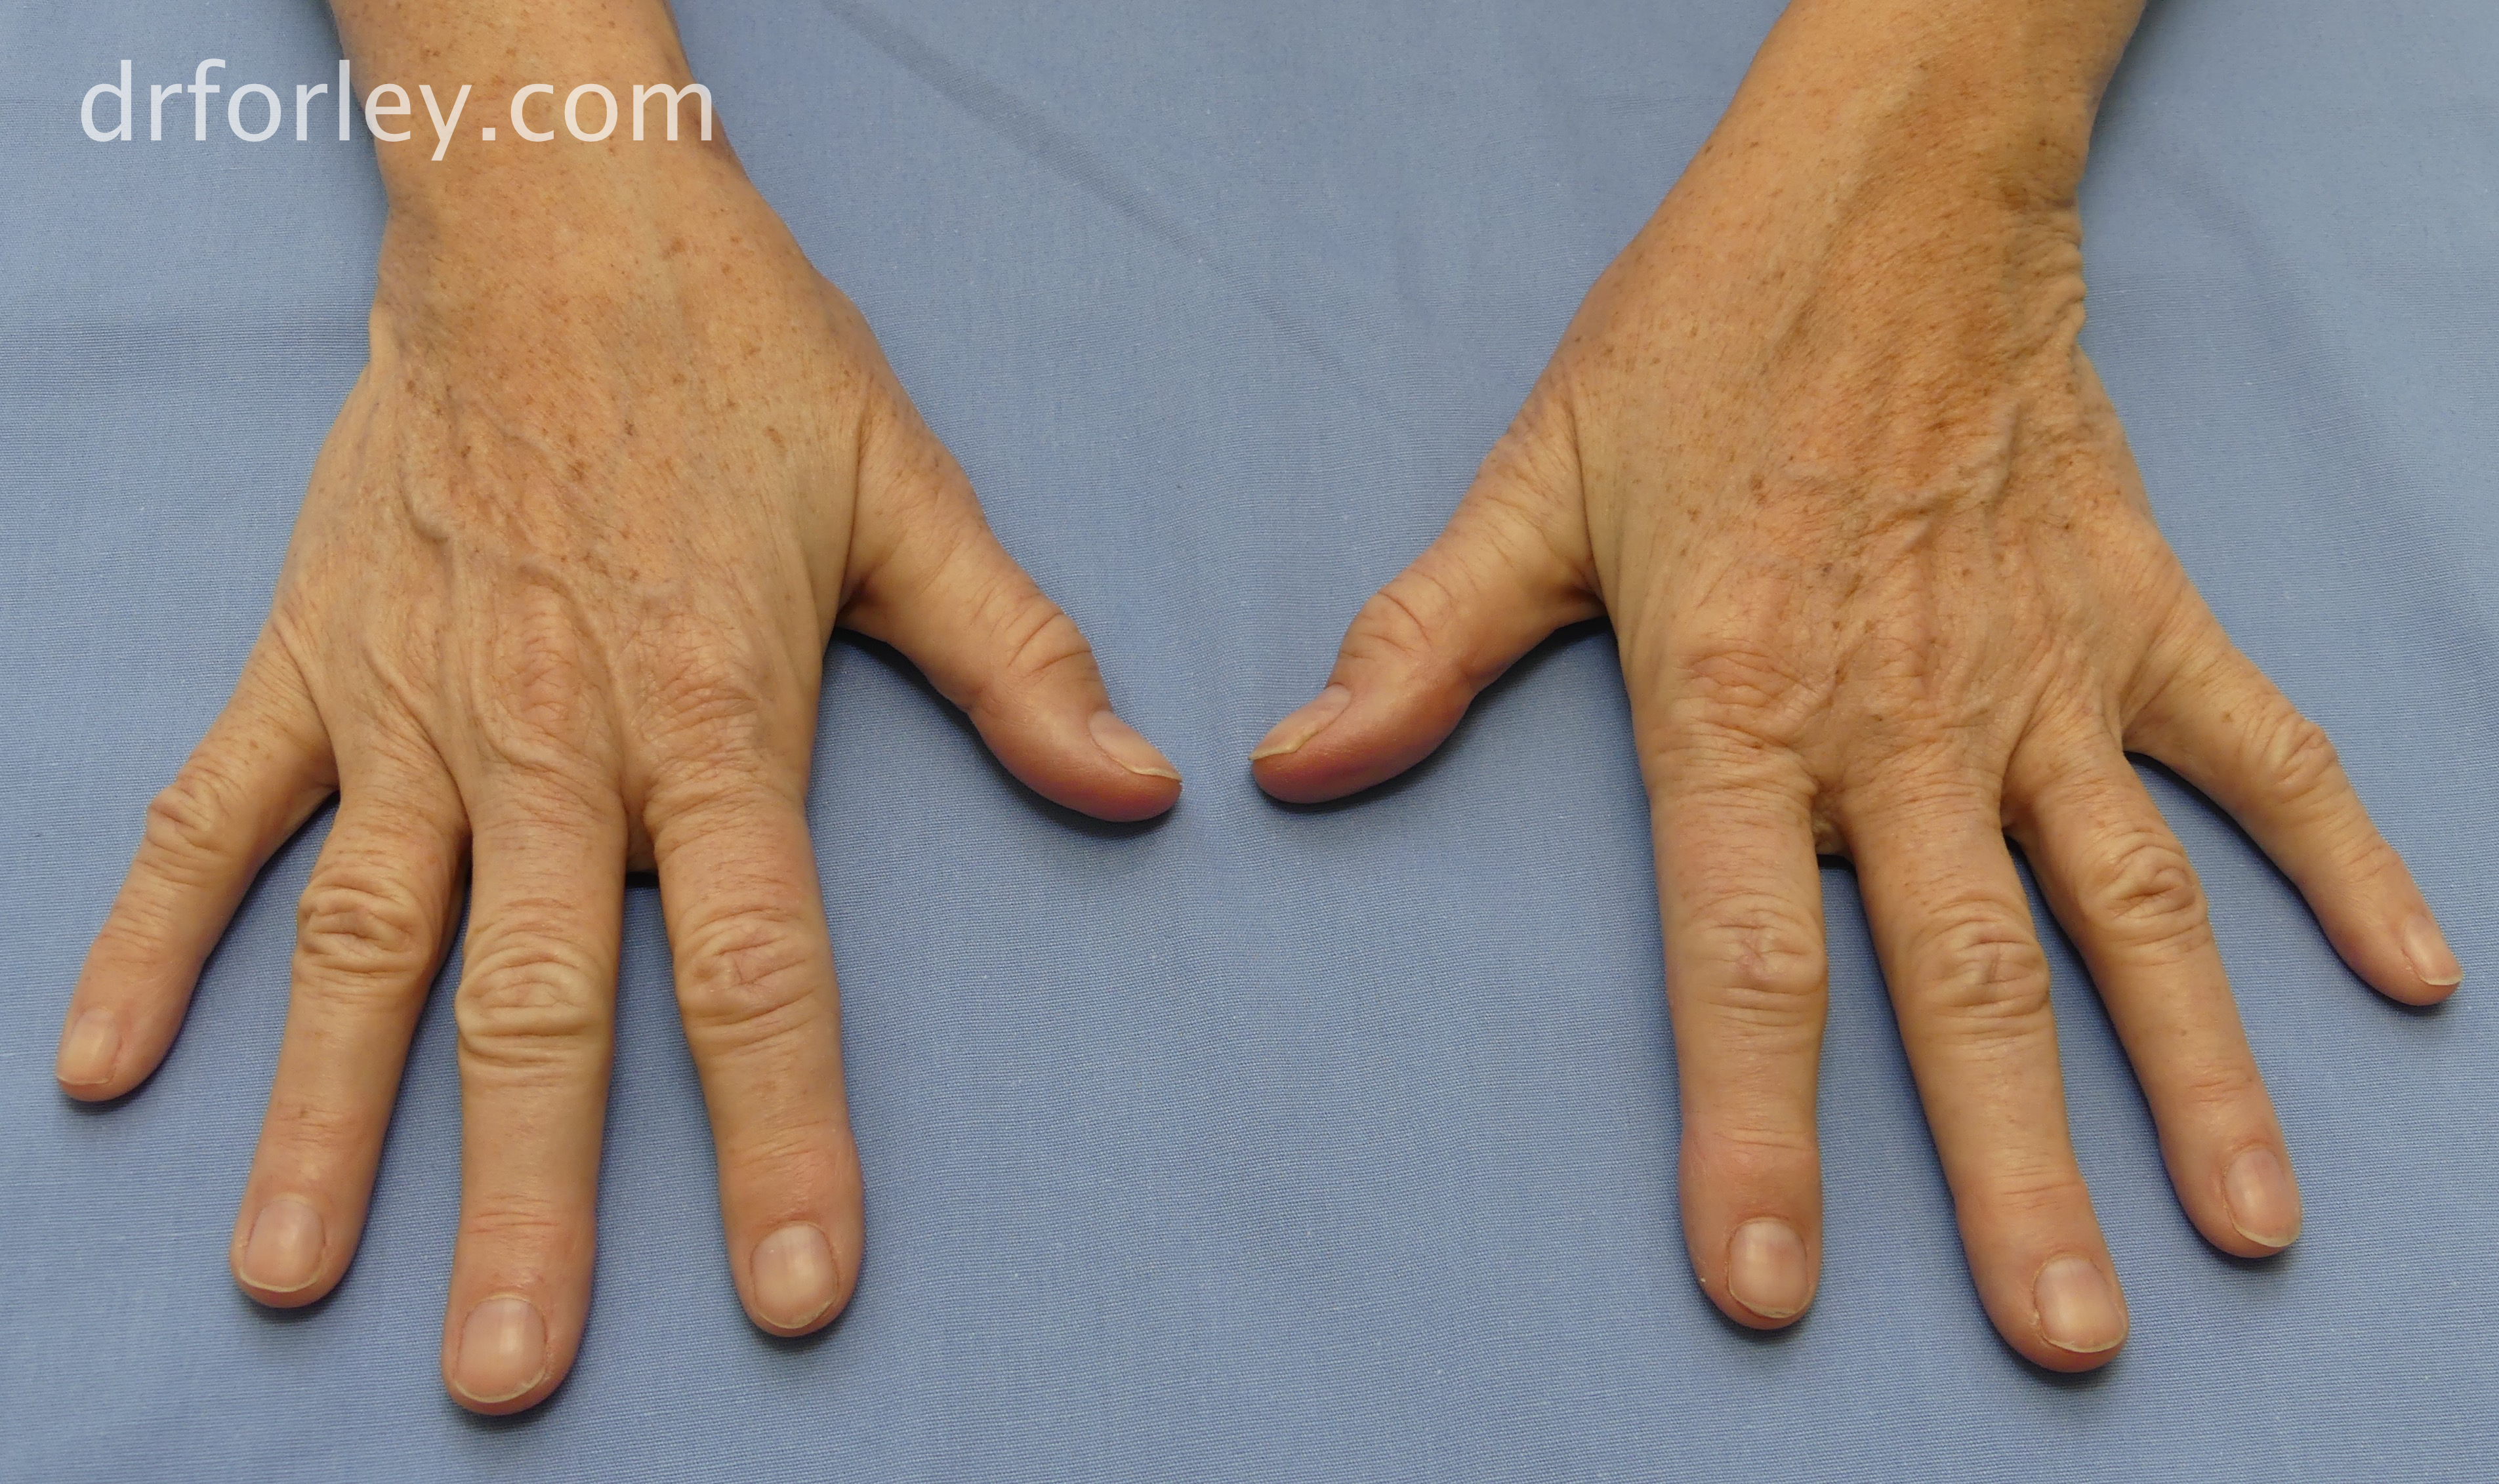 Blog - TREATING AGE SPOTS ON THE HANDS Photo Woman's hands, 64 year old female 1 month following a single Nordlys broad band light treatment of age spots